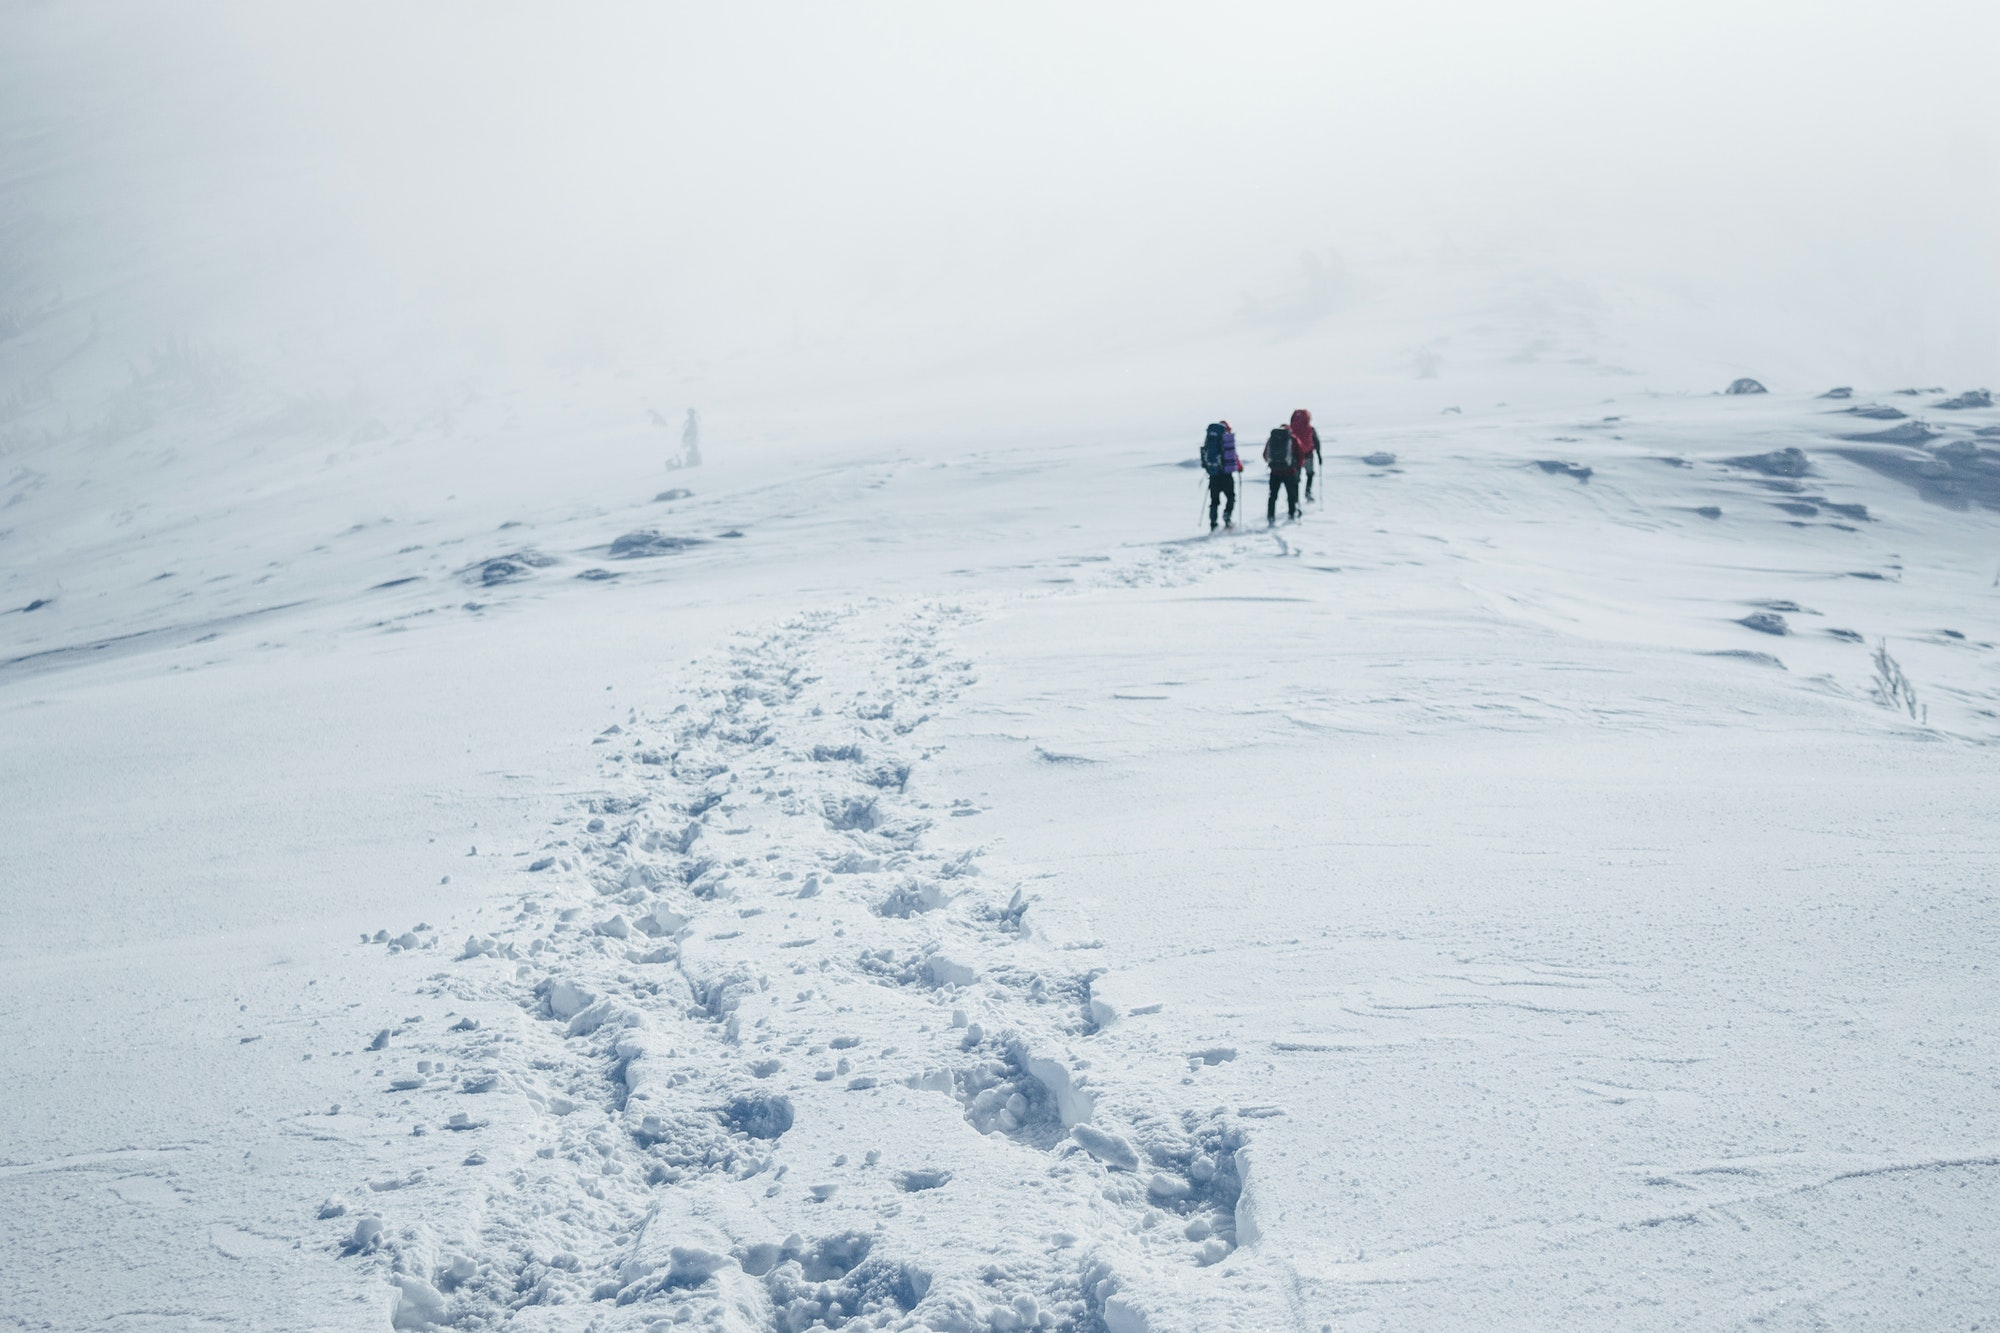 Climbers struggling winter blizzard in Gorgany mountains